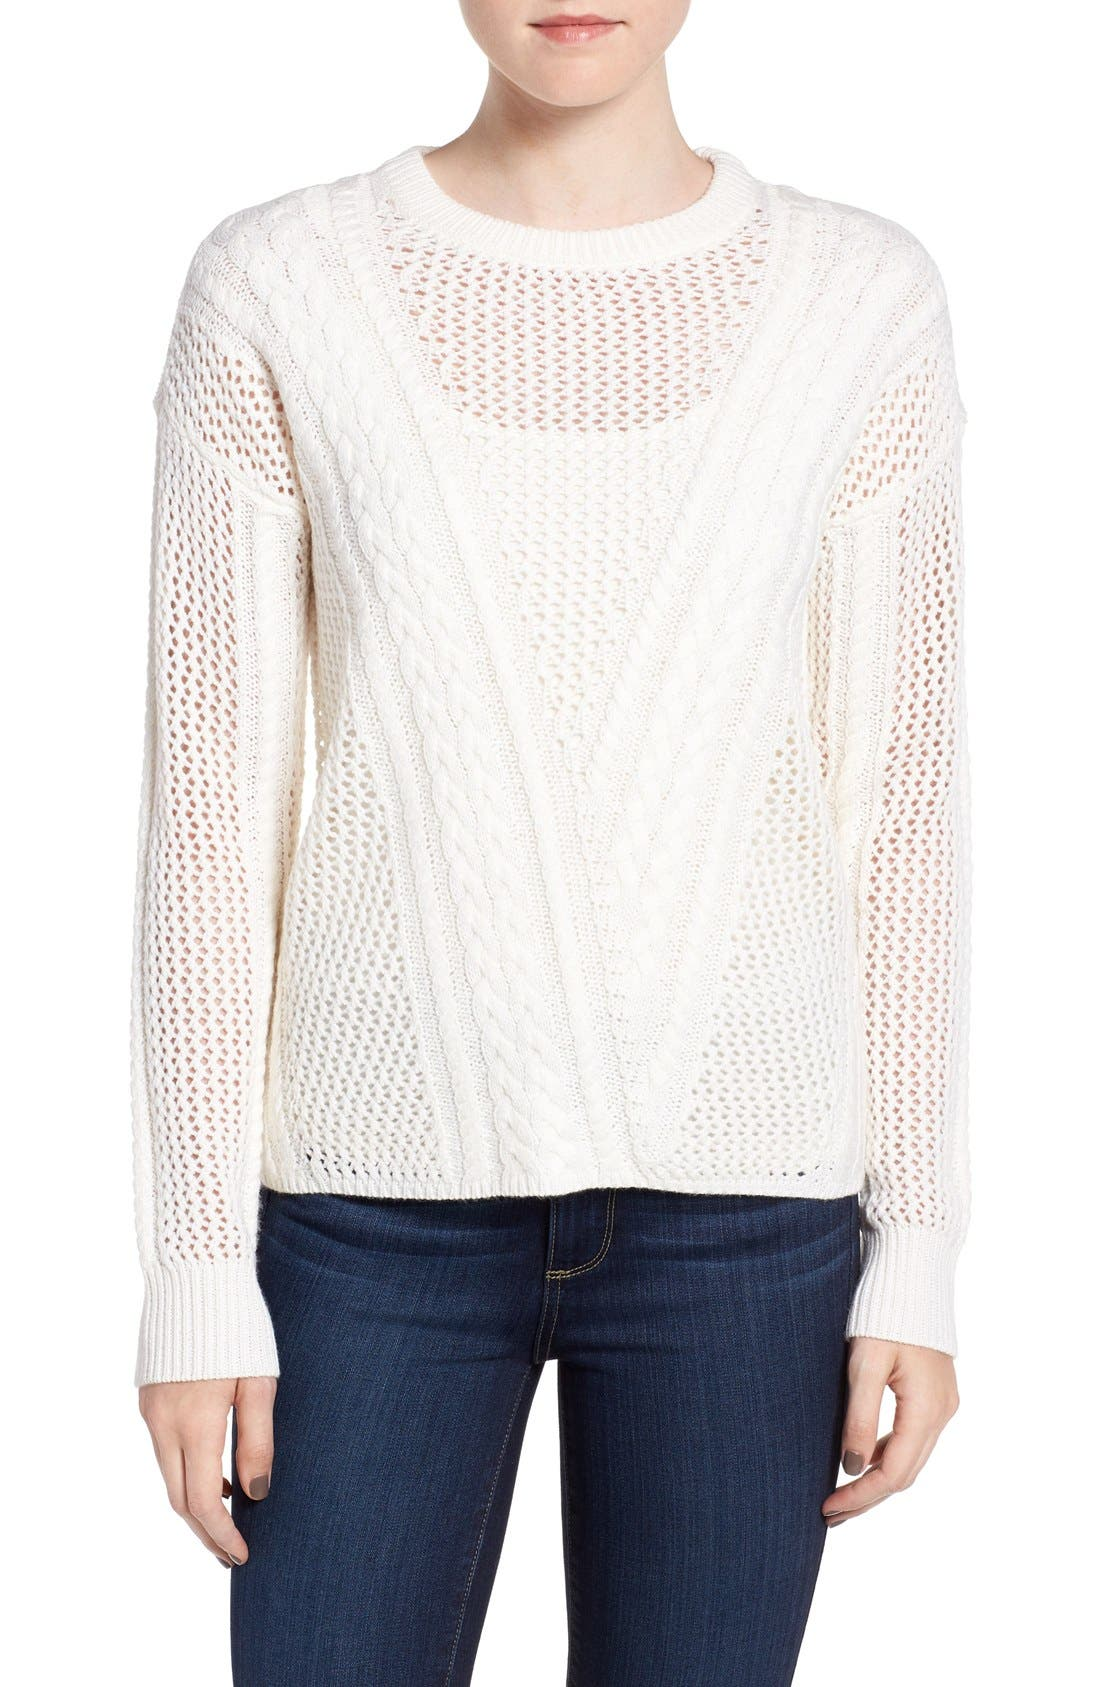 Amory Open Knit Sweater,                         Main,                         color, Ivory